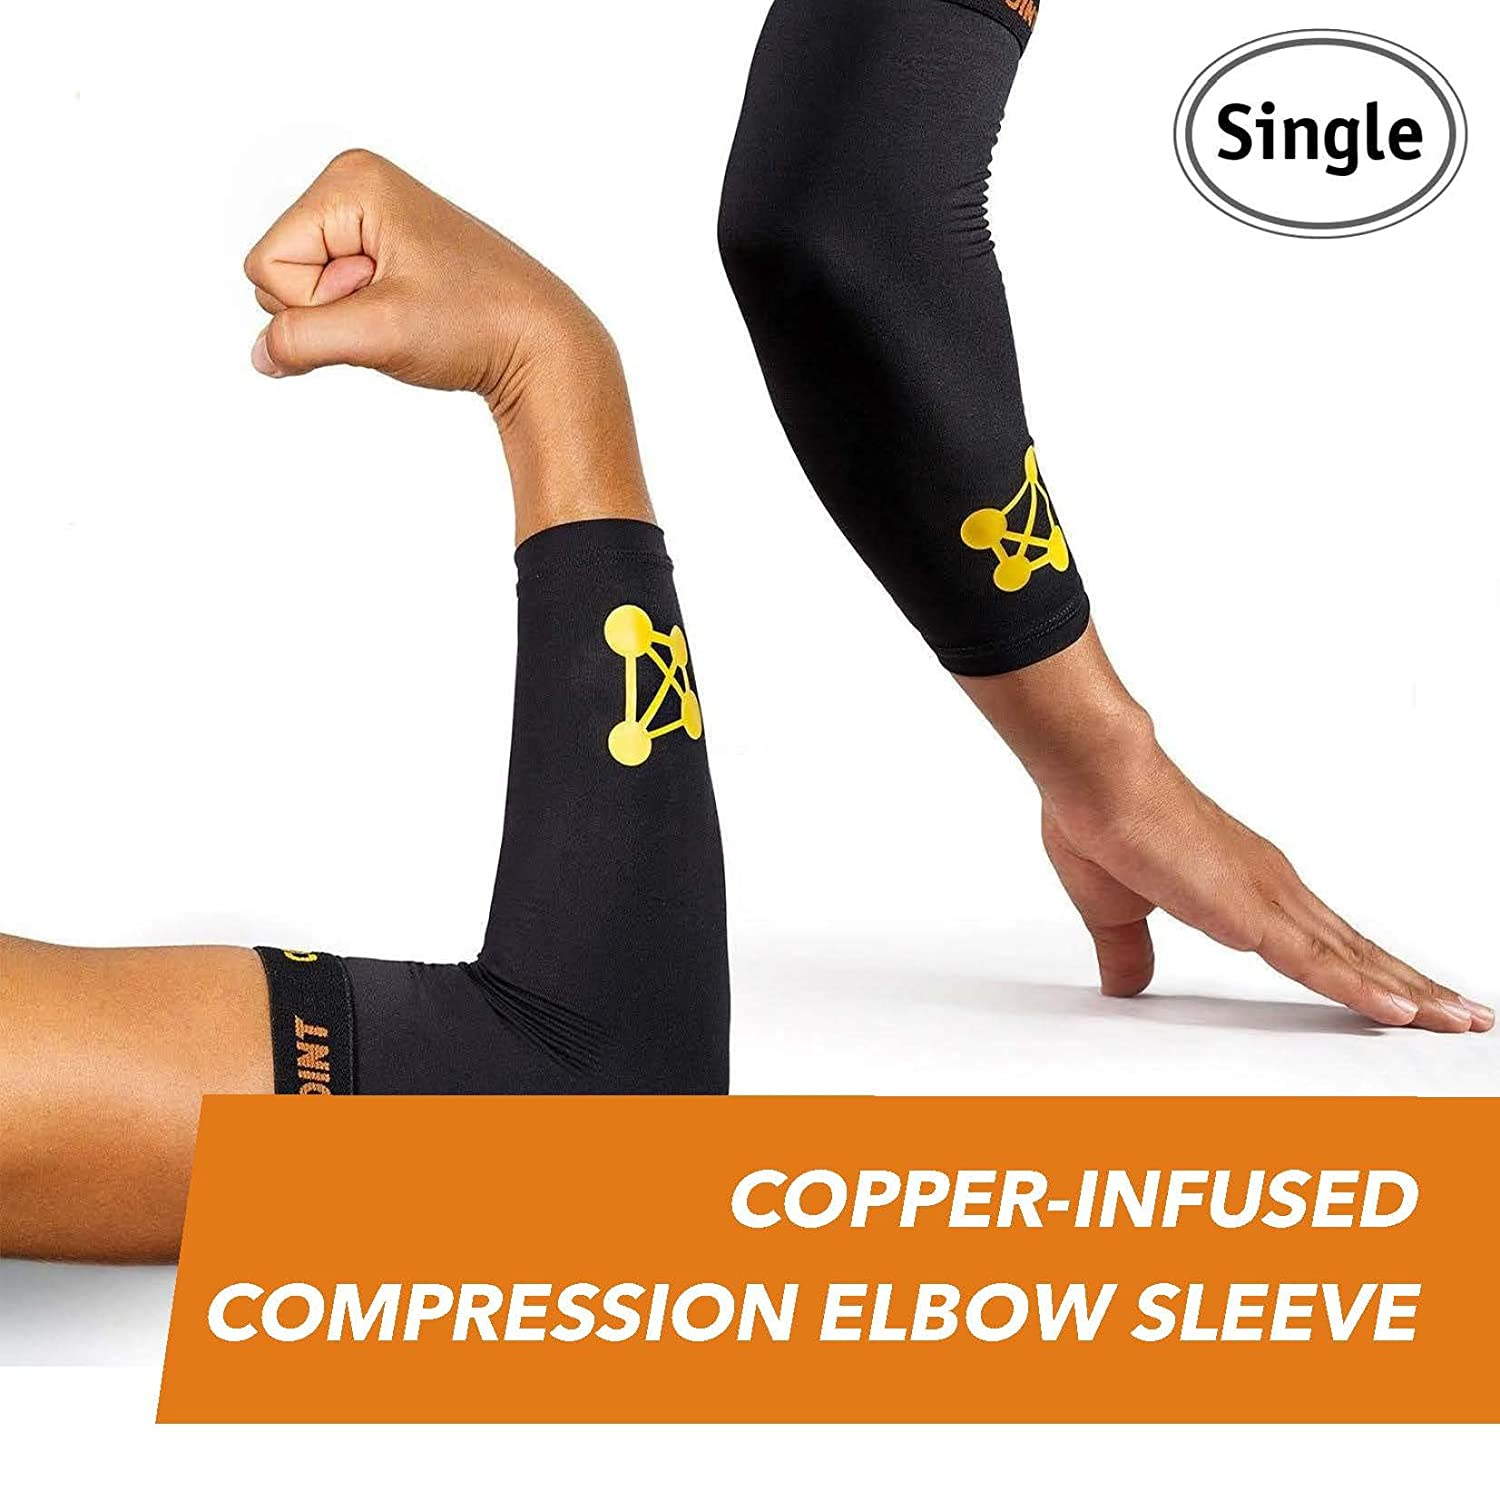 2019 year look- How wear to long arm compression sleeves